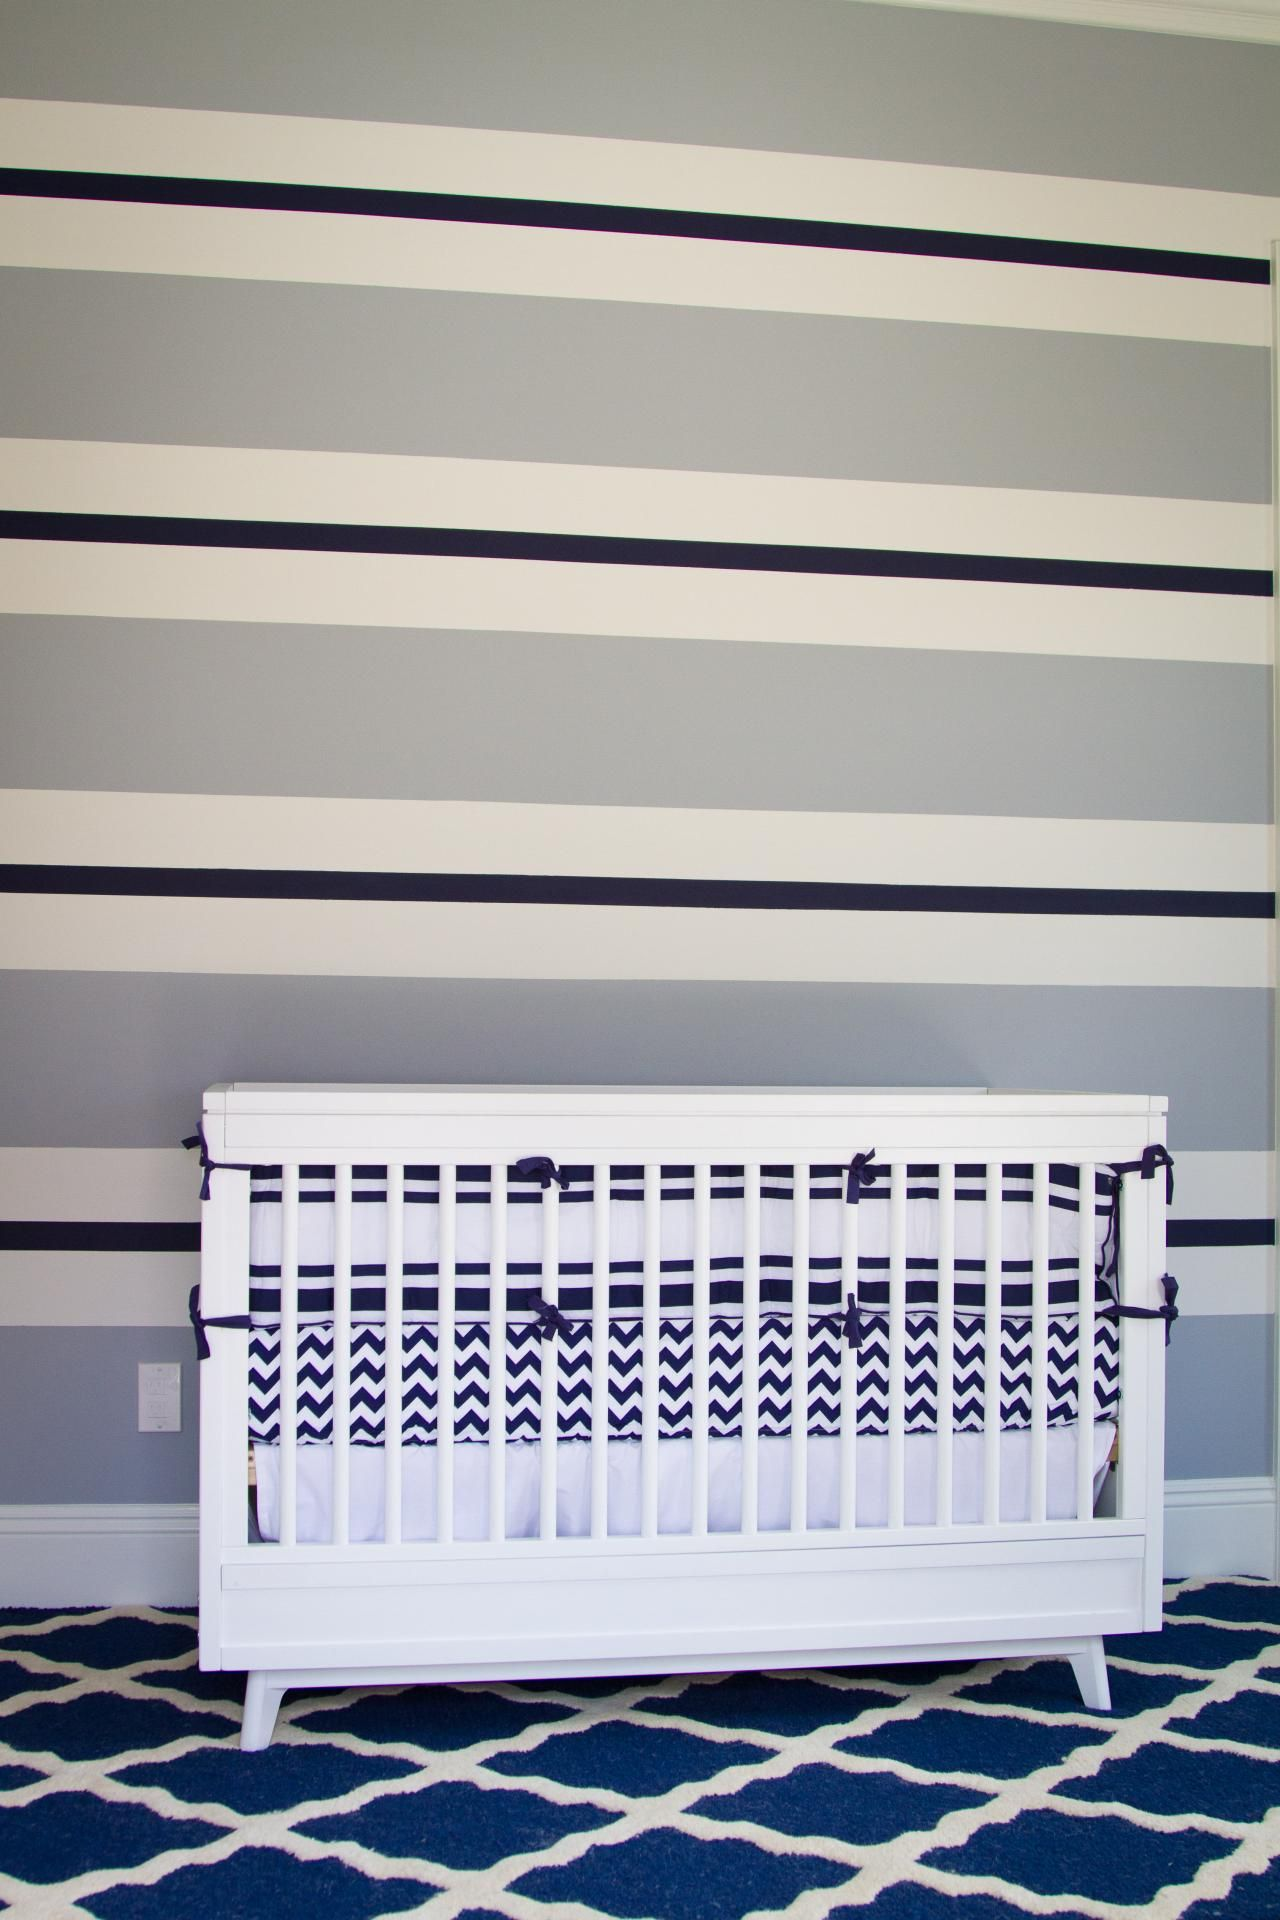 How To Paint A Room With Stripes - Painted horizontal stripes adorn an accent wall in this contemporary nursery pulling together the room s